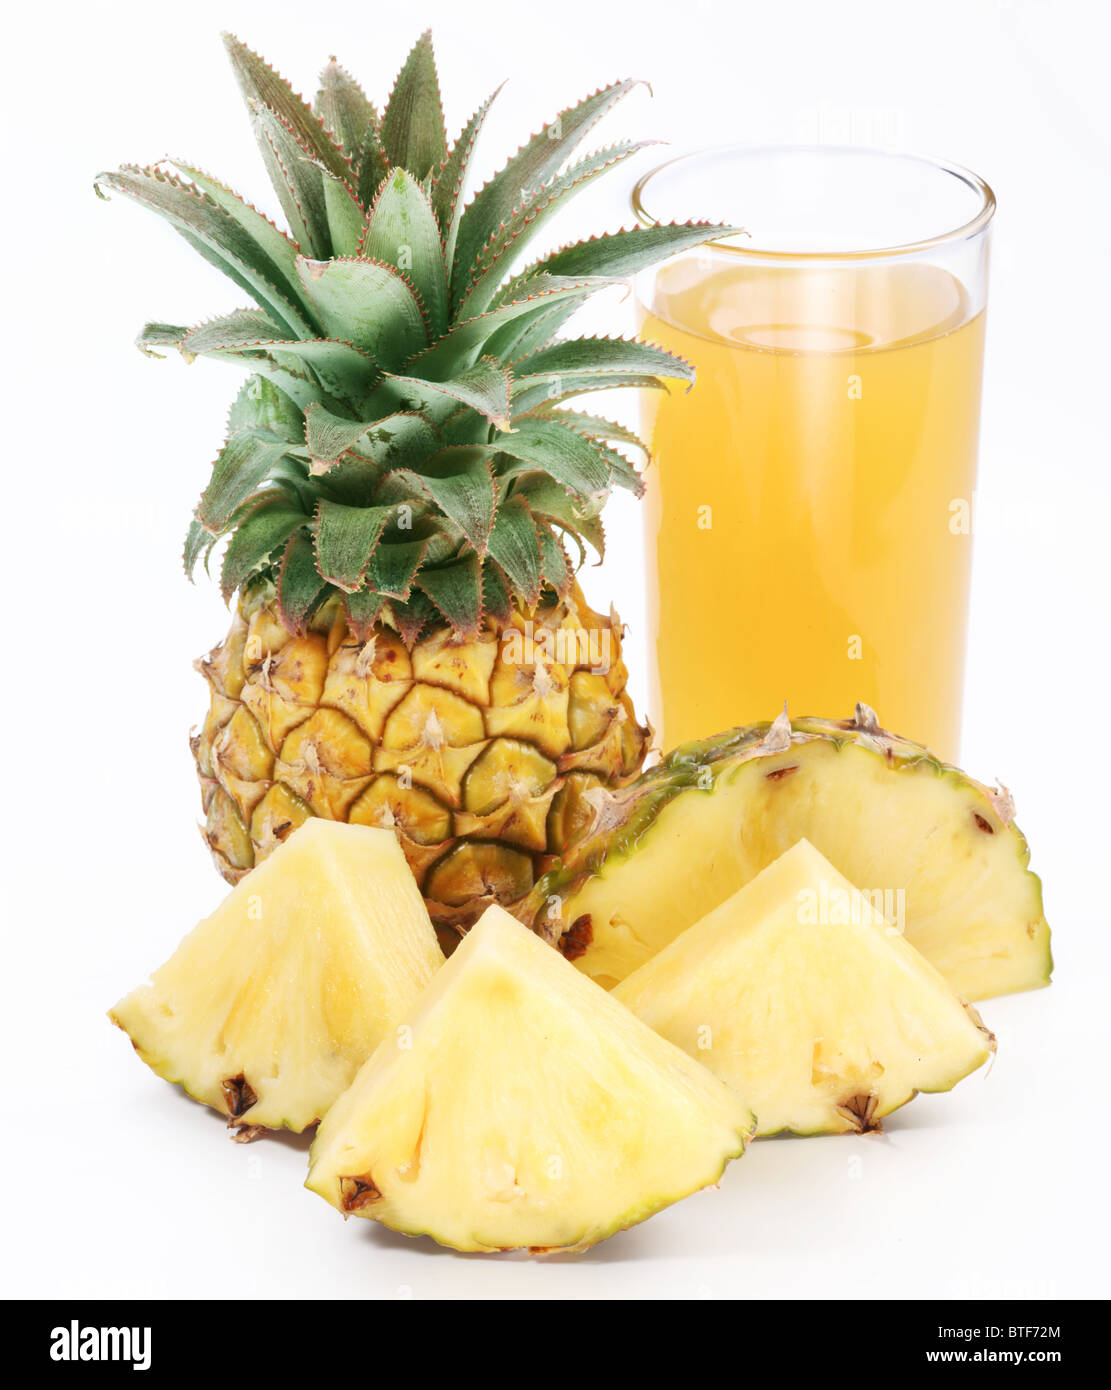 Full glass of fresh pineapple juice and pineapple fruit in the front. - Stock Image